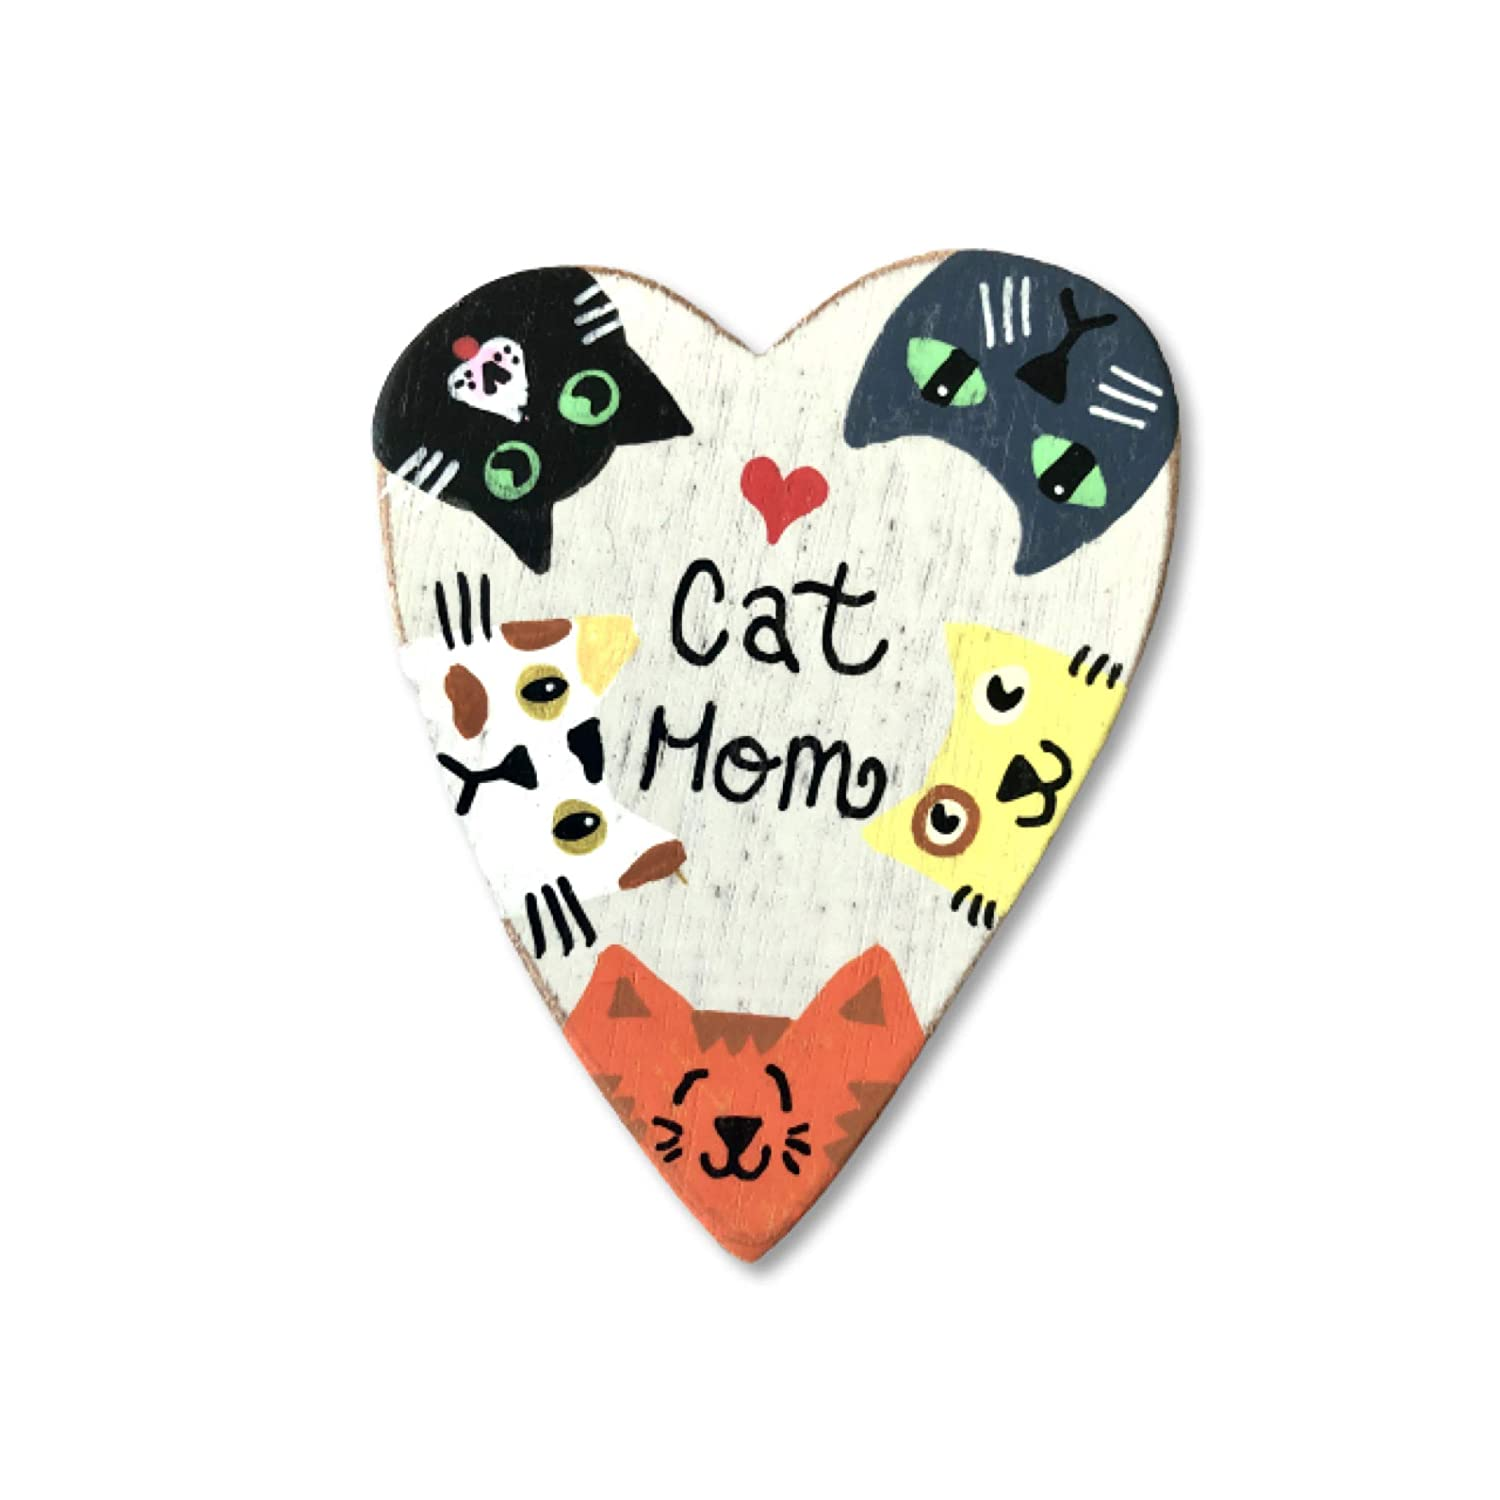 Large 3.5 inches Cat Lover Kitchen Decor Cat Mom Heart Fridge Magnet